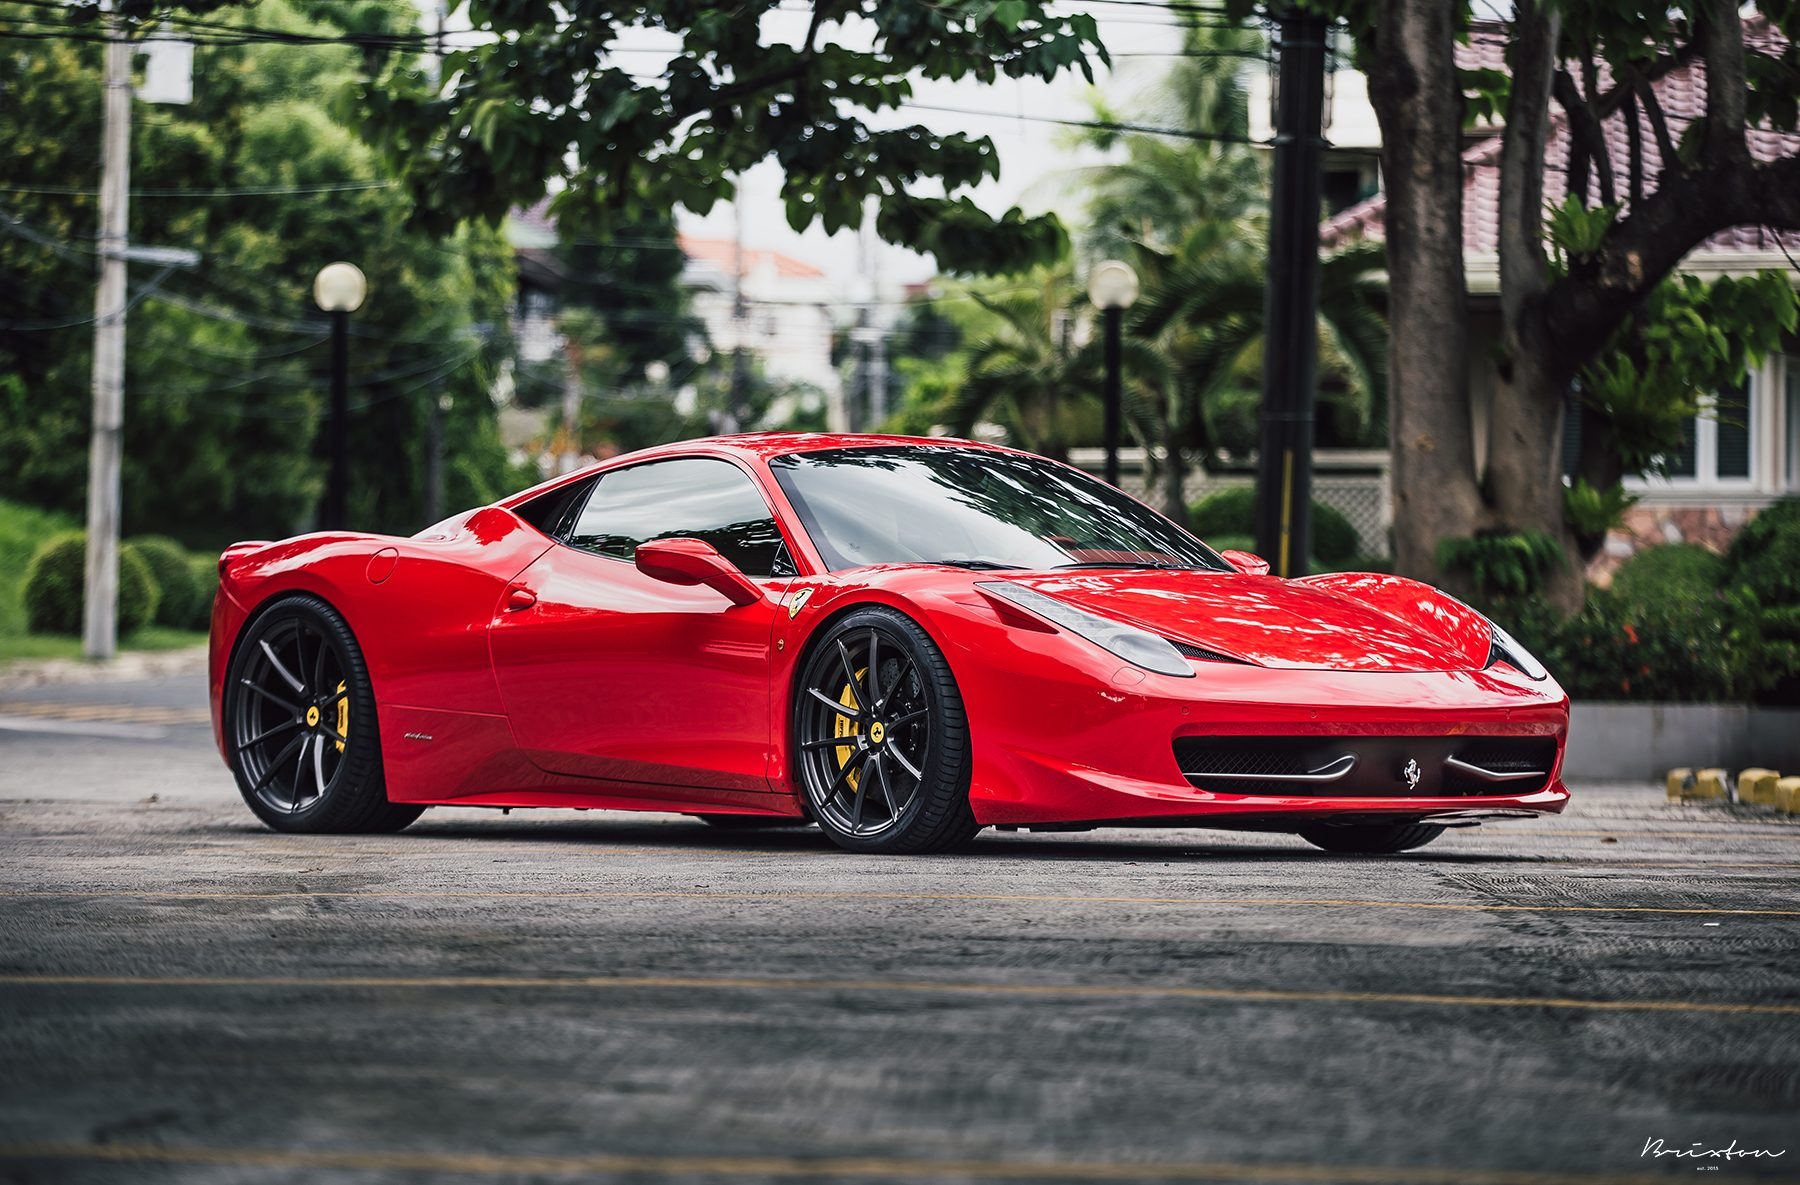 Red ferrari photo